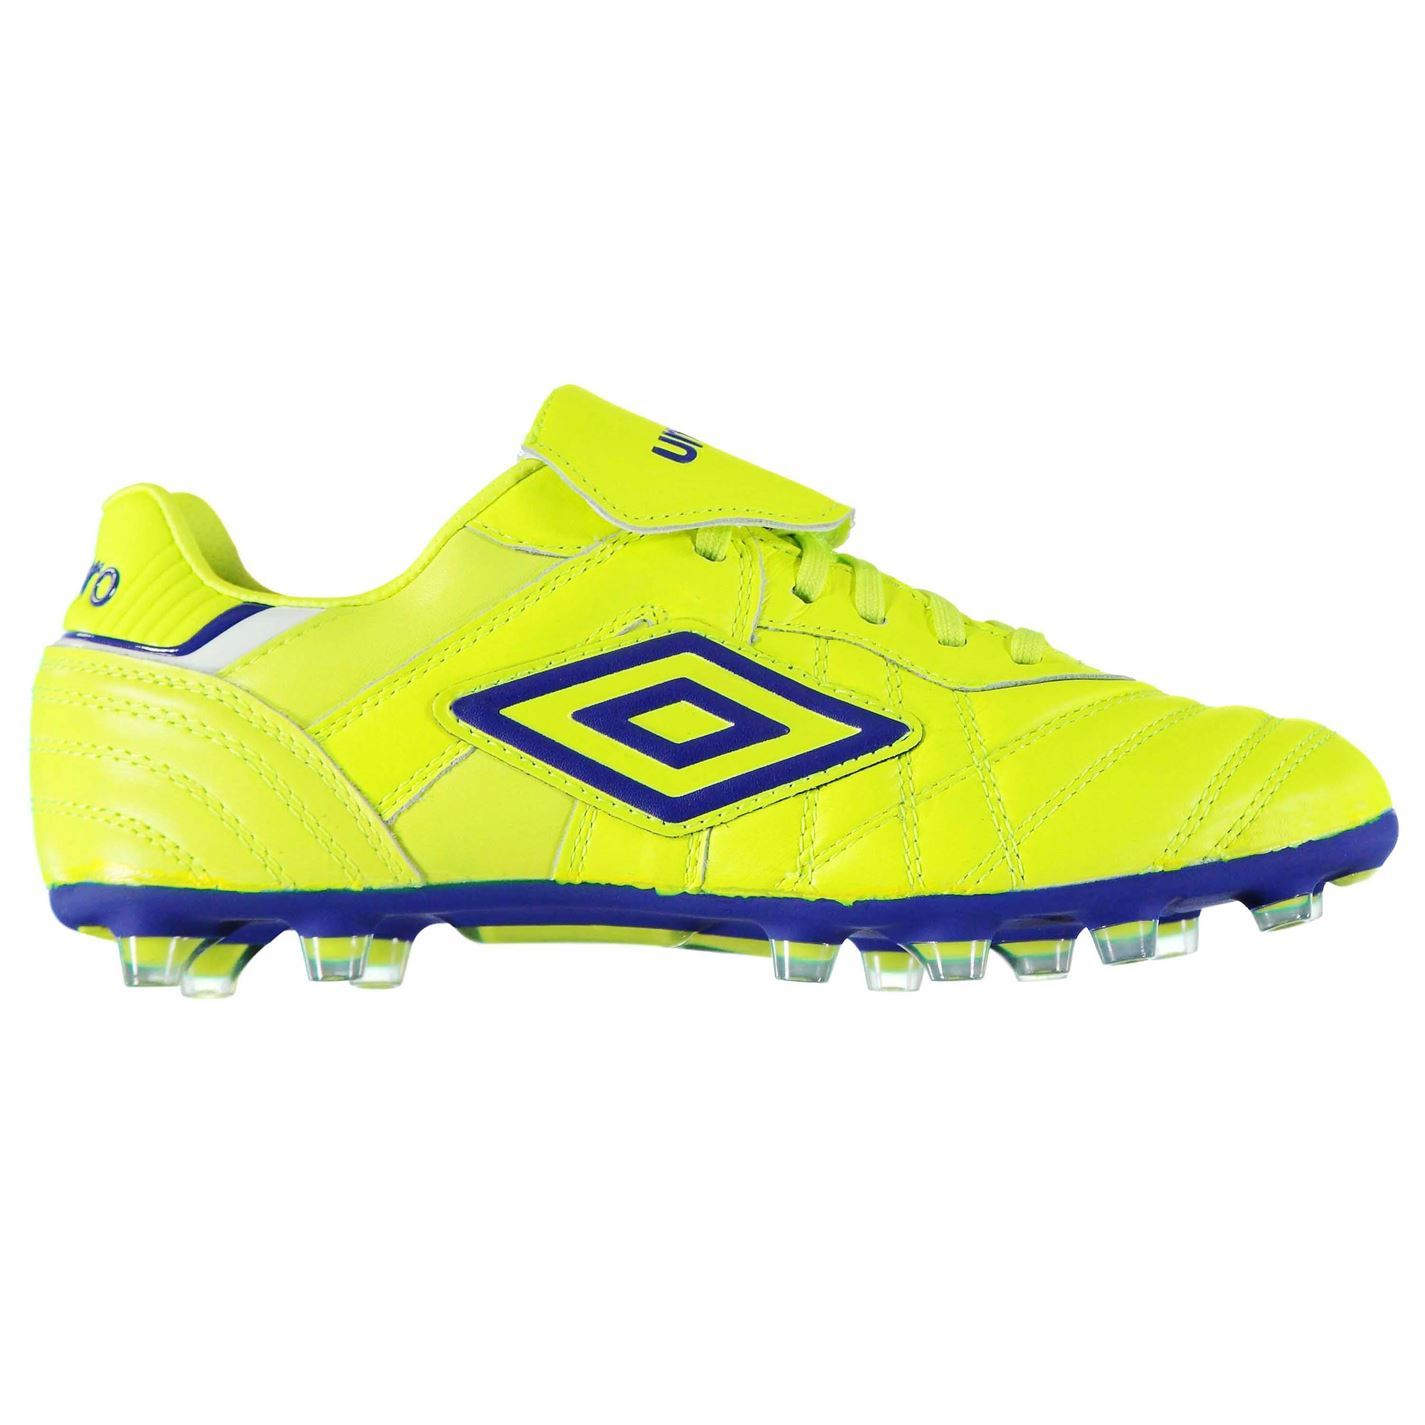 Umbro  Herren Gents Speciali Eternal Pro Pro Eternal HG Football Stiefel Footwear Laces Fastened 423c8c